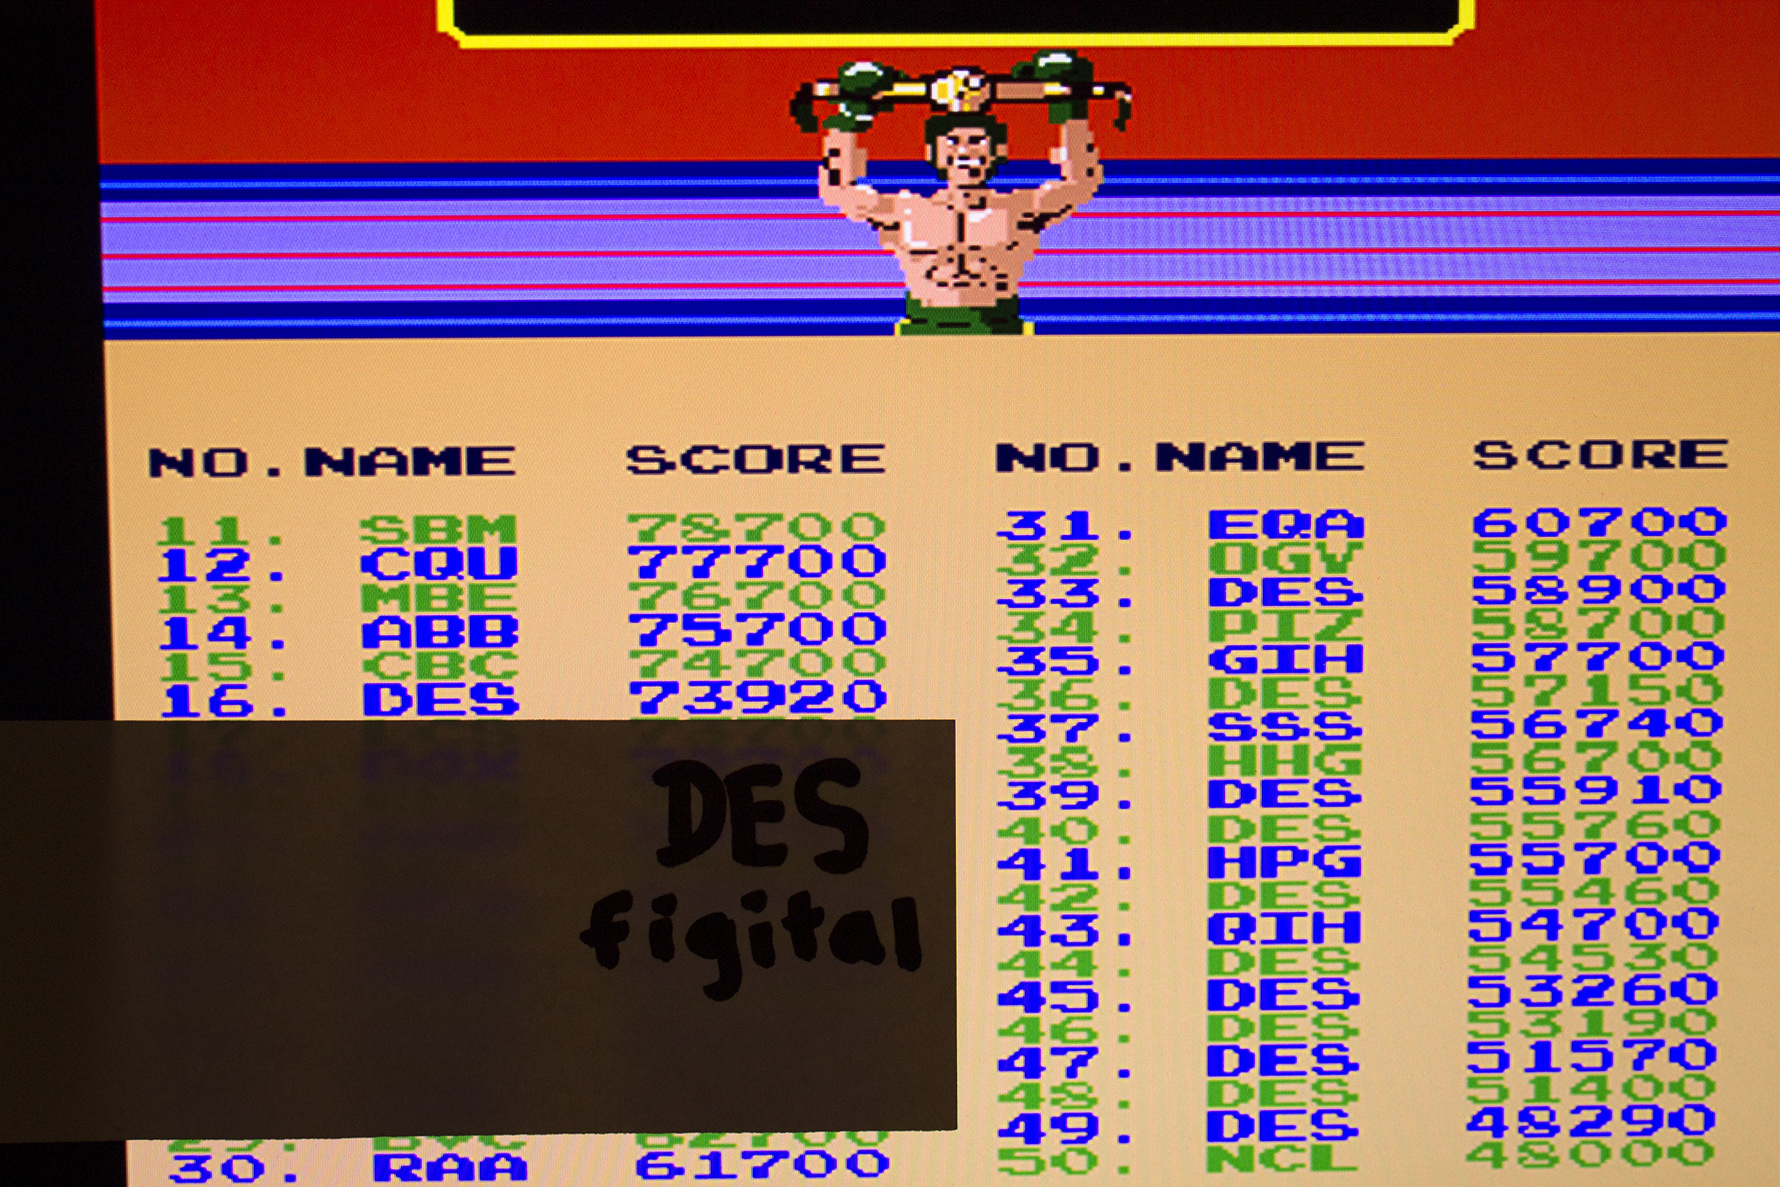 figital: Punch Out [punchout] (Arcade Emulated / M.A.M.E.) 73,920 points on 2014-09-09 13:21:00